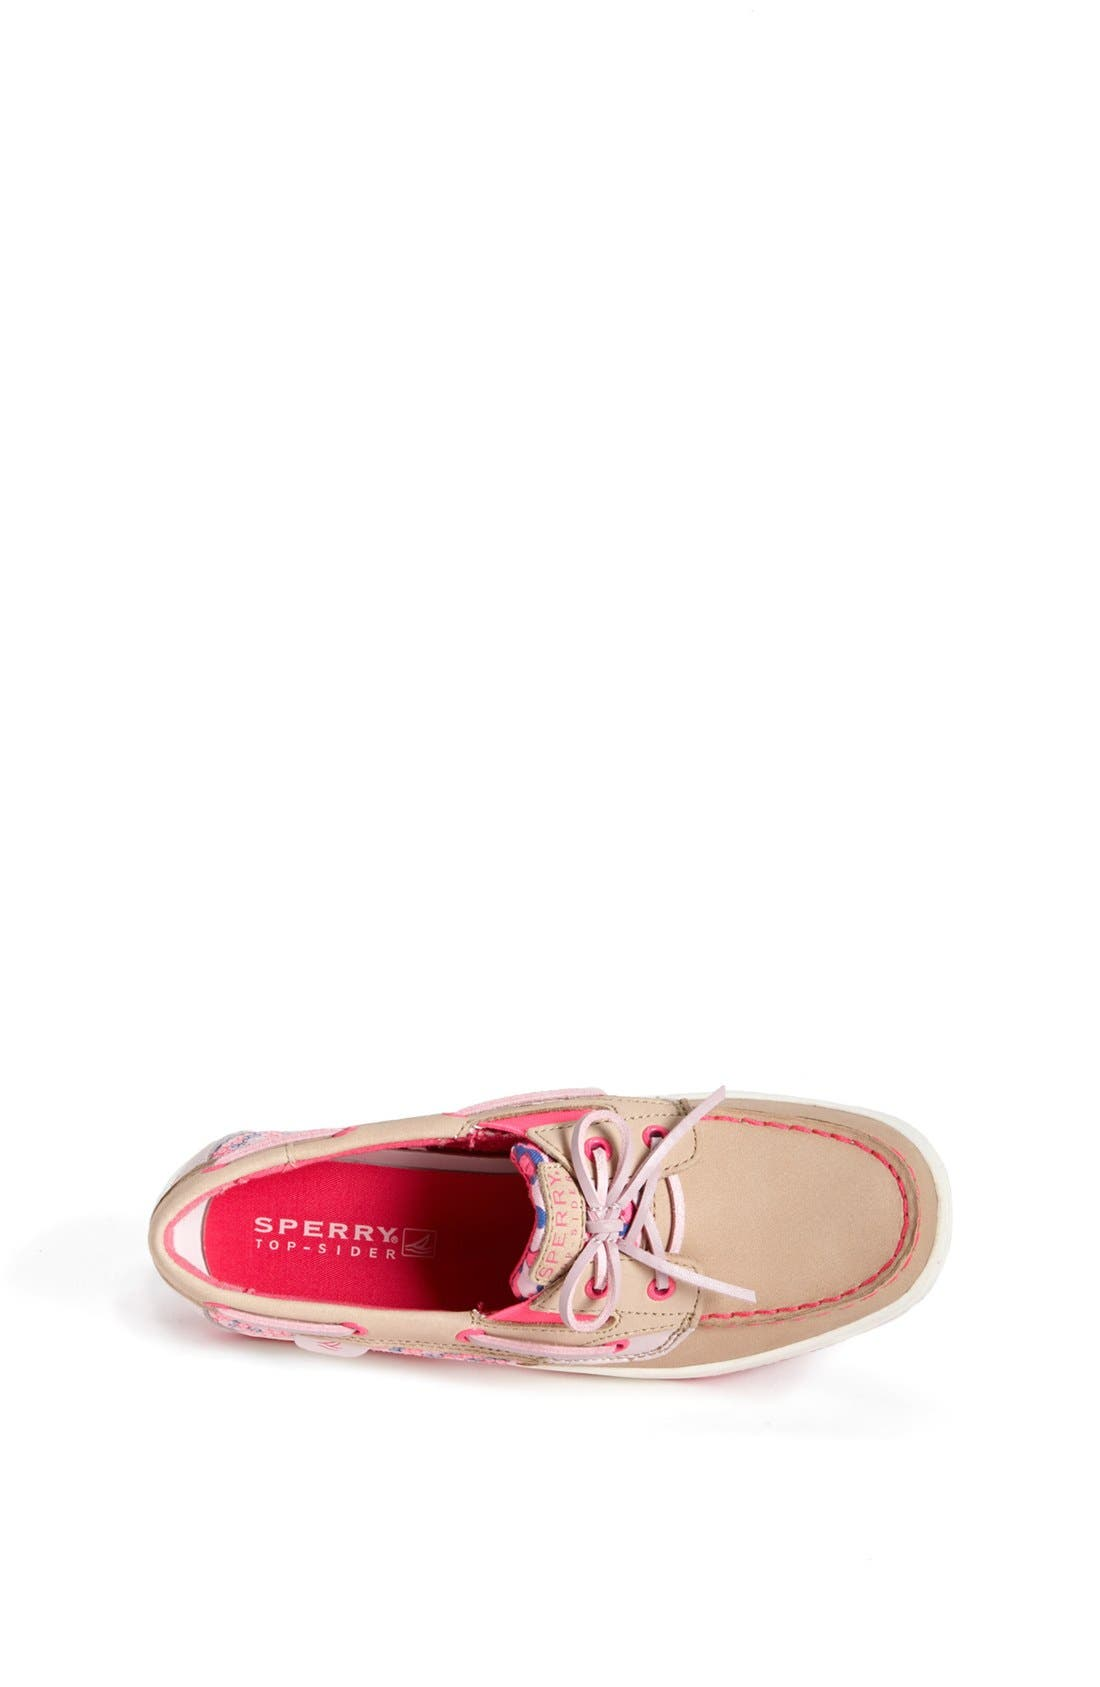 Alternate Image 3  - Sperry Top-Sider® 'Butterflyfish' Boat Shoe (Walker, Toddler, Little Kid & Big Kid)